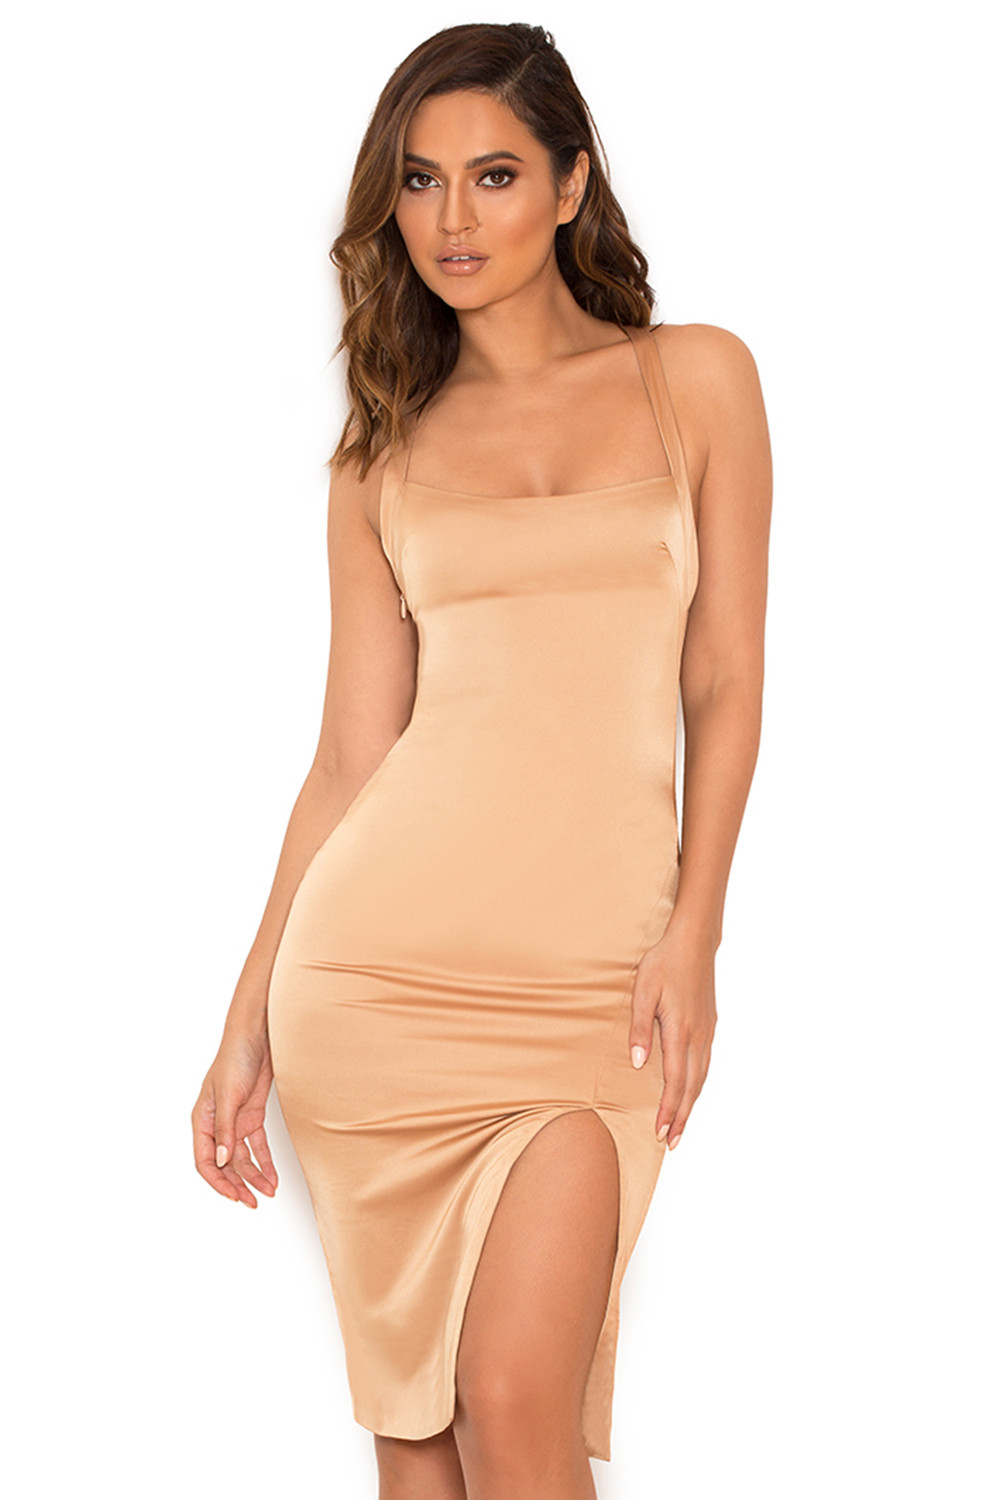 Clothing Bodycon Dresses Essie Nude Stretch Satin Thigh Split Inside Flats Hadid Khaky 37 Dress